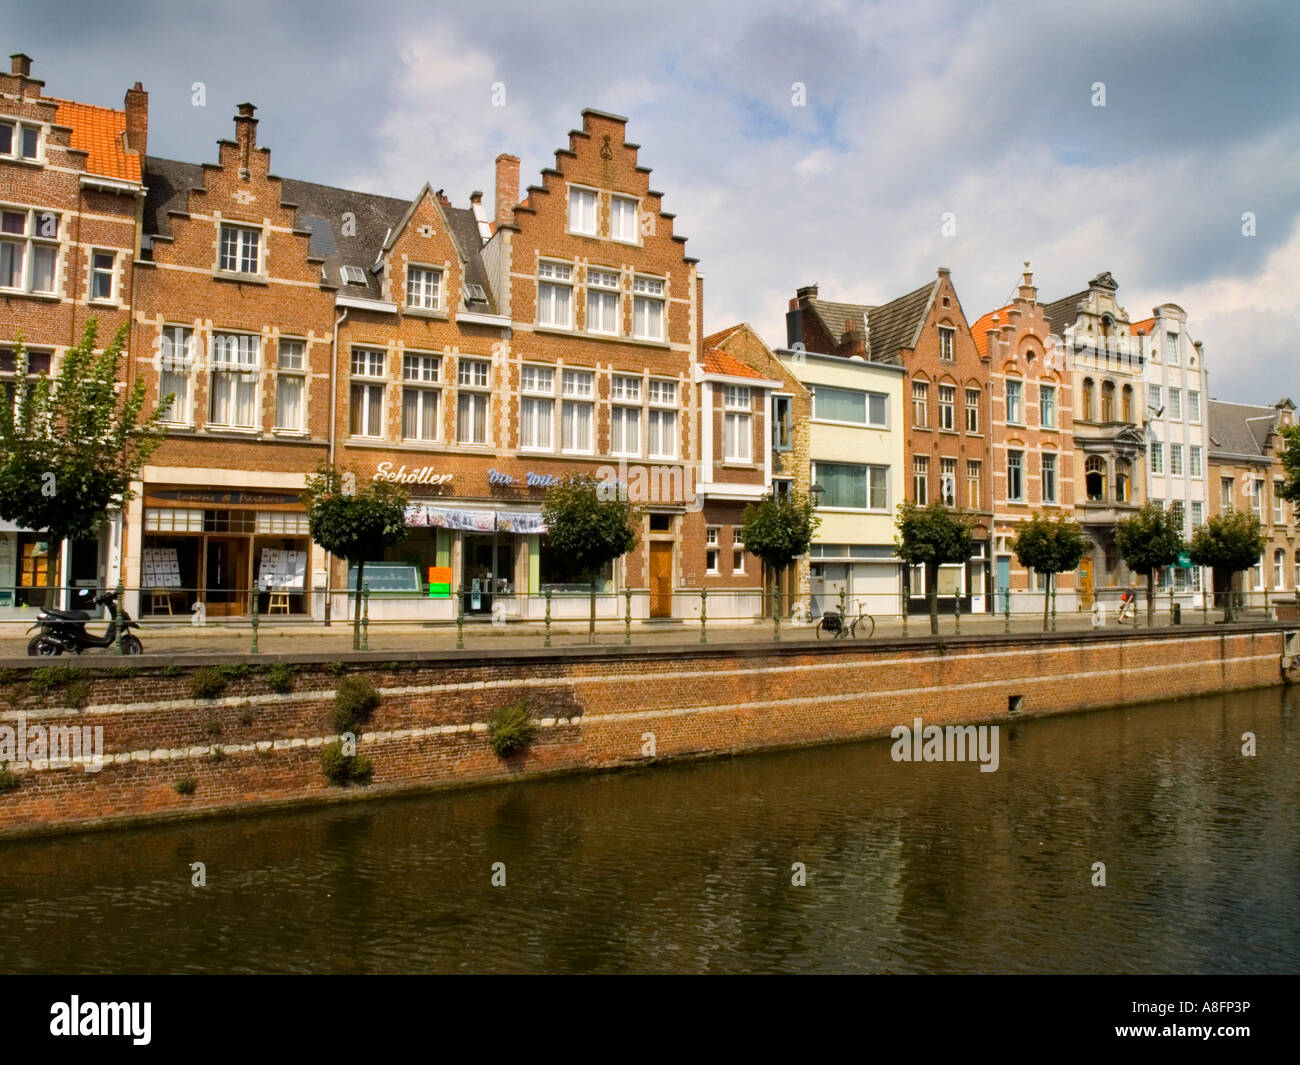 Old town Lier Belgium travel architect architecture facade ...